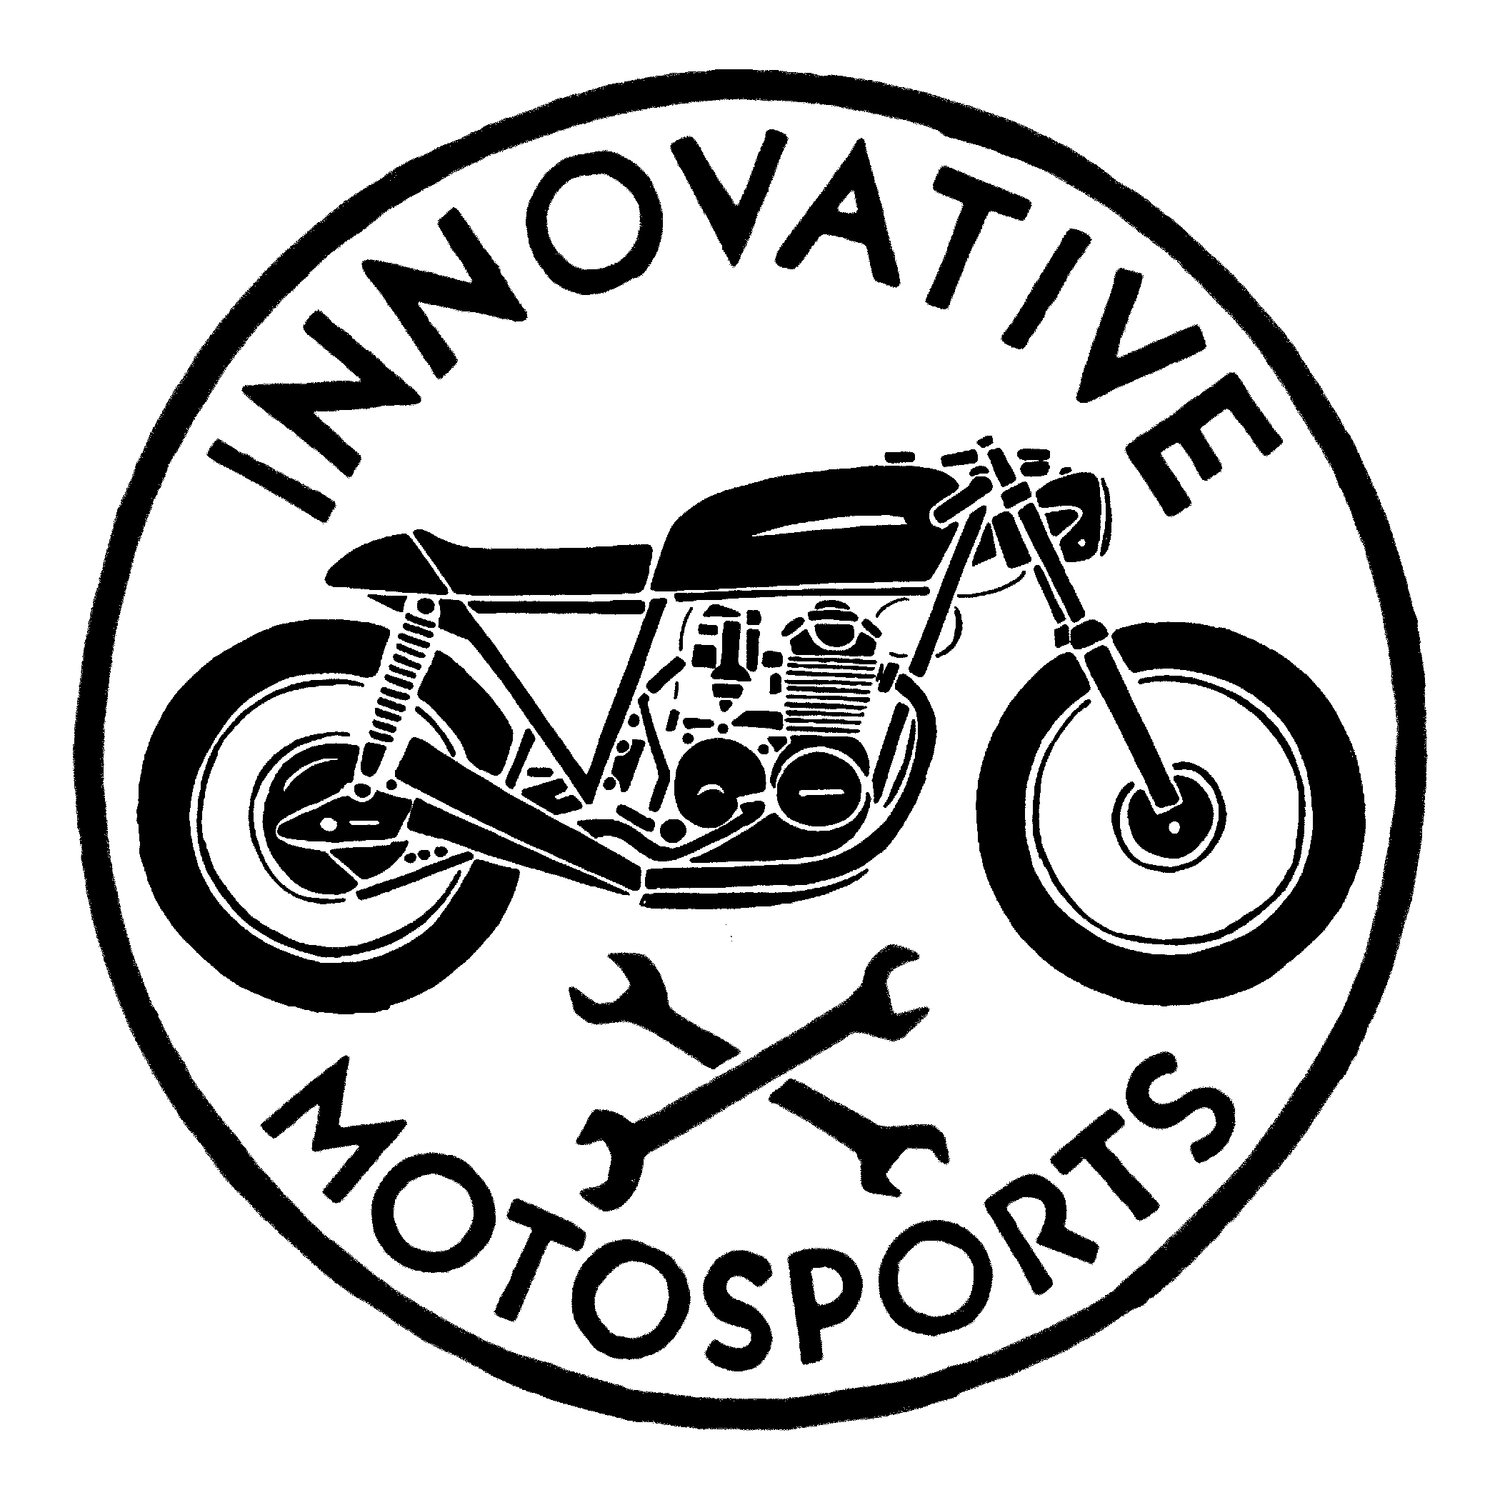 Innovative MotoSports LLC